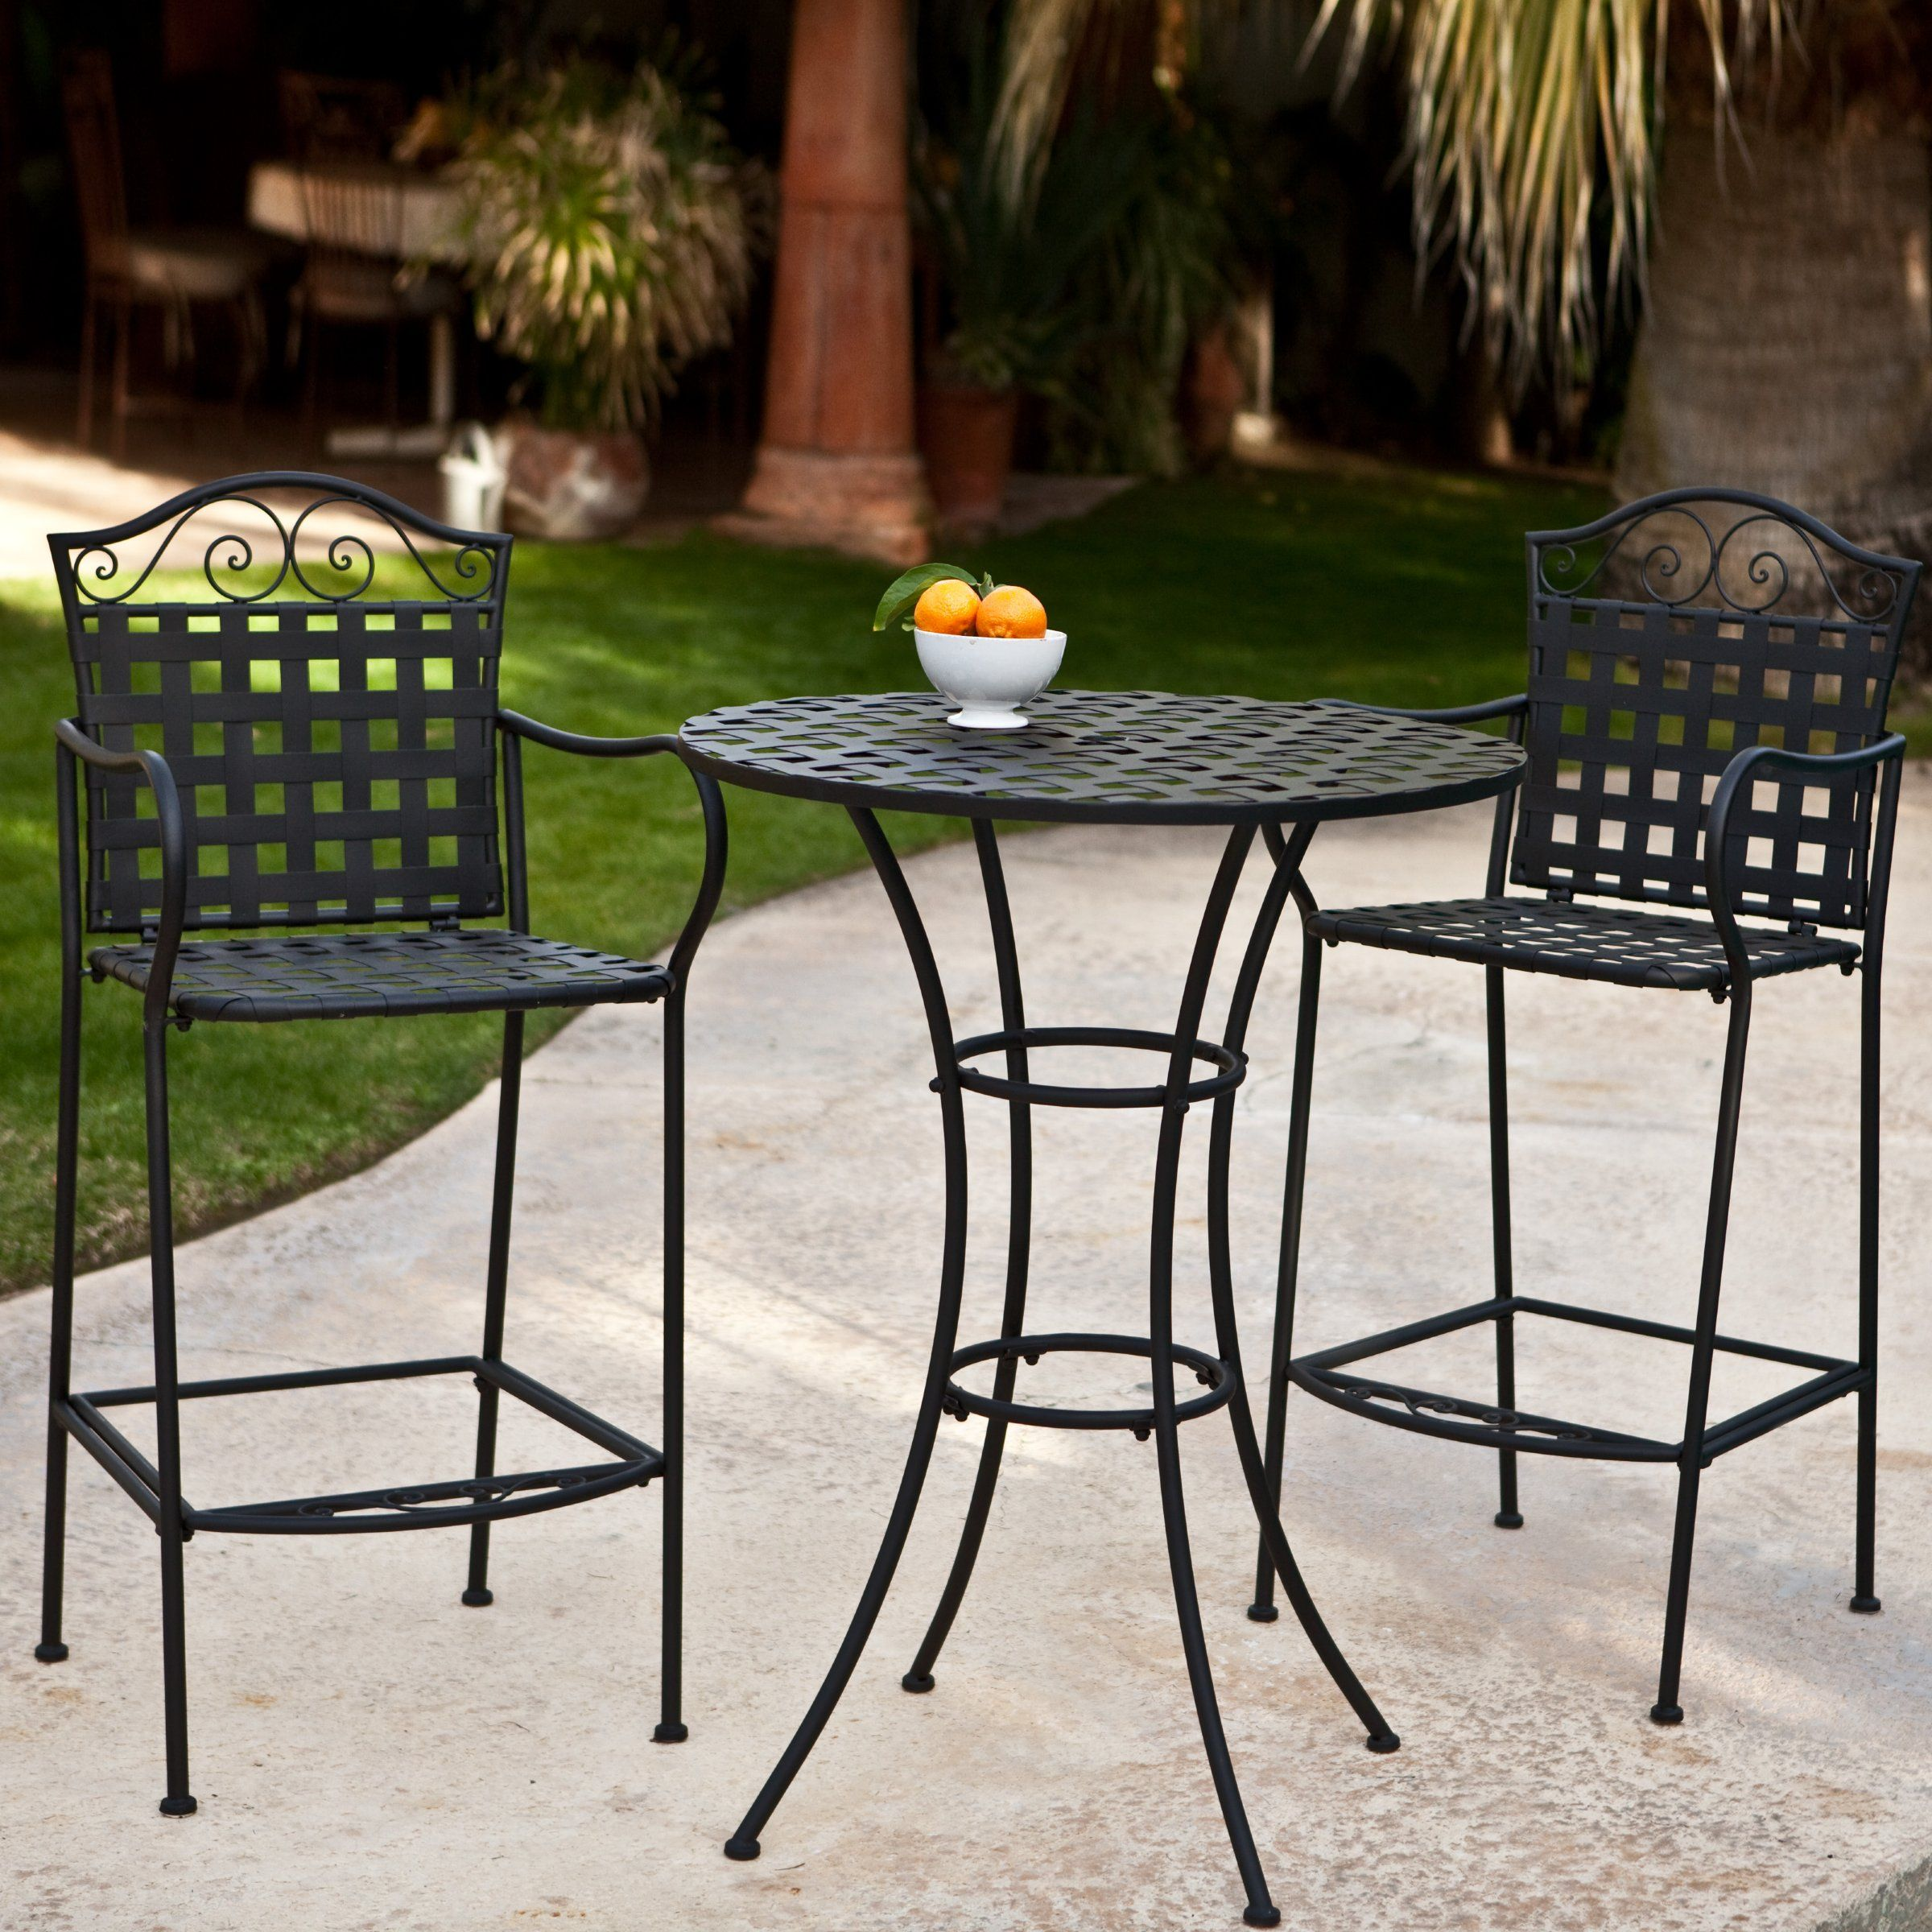 This one. | Patio furniture sets, Outdoor garden furniture on Belham Living Wrought Iron Bar Height Bistro Set By Woodard id=97362